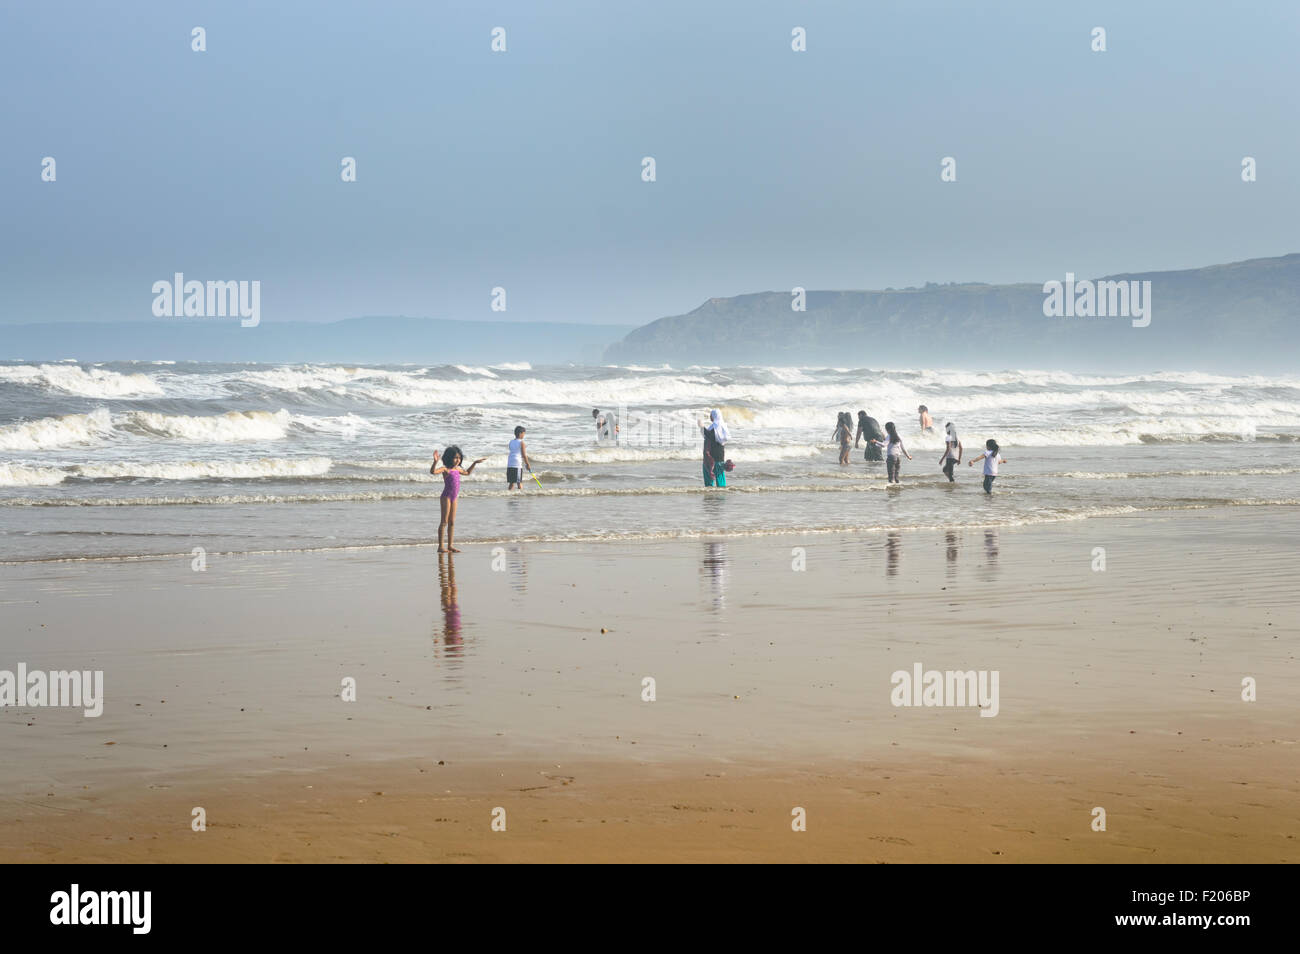 A family (assumed to be Muslim) wading in the sea on Scarborough beach. In Scarborough, Englan - Stock Image